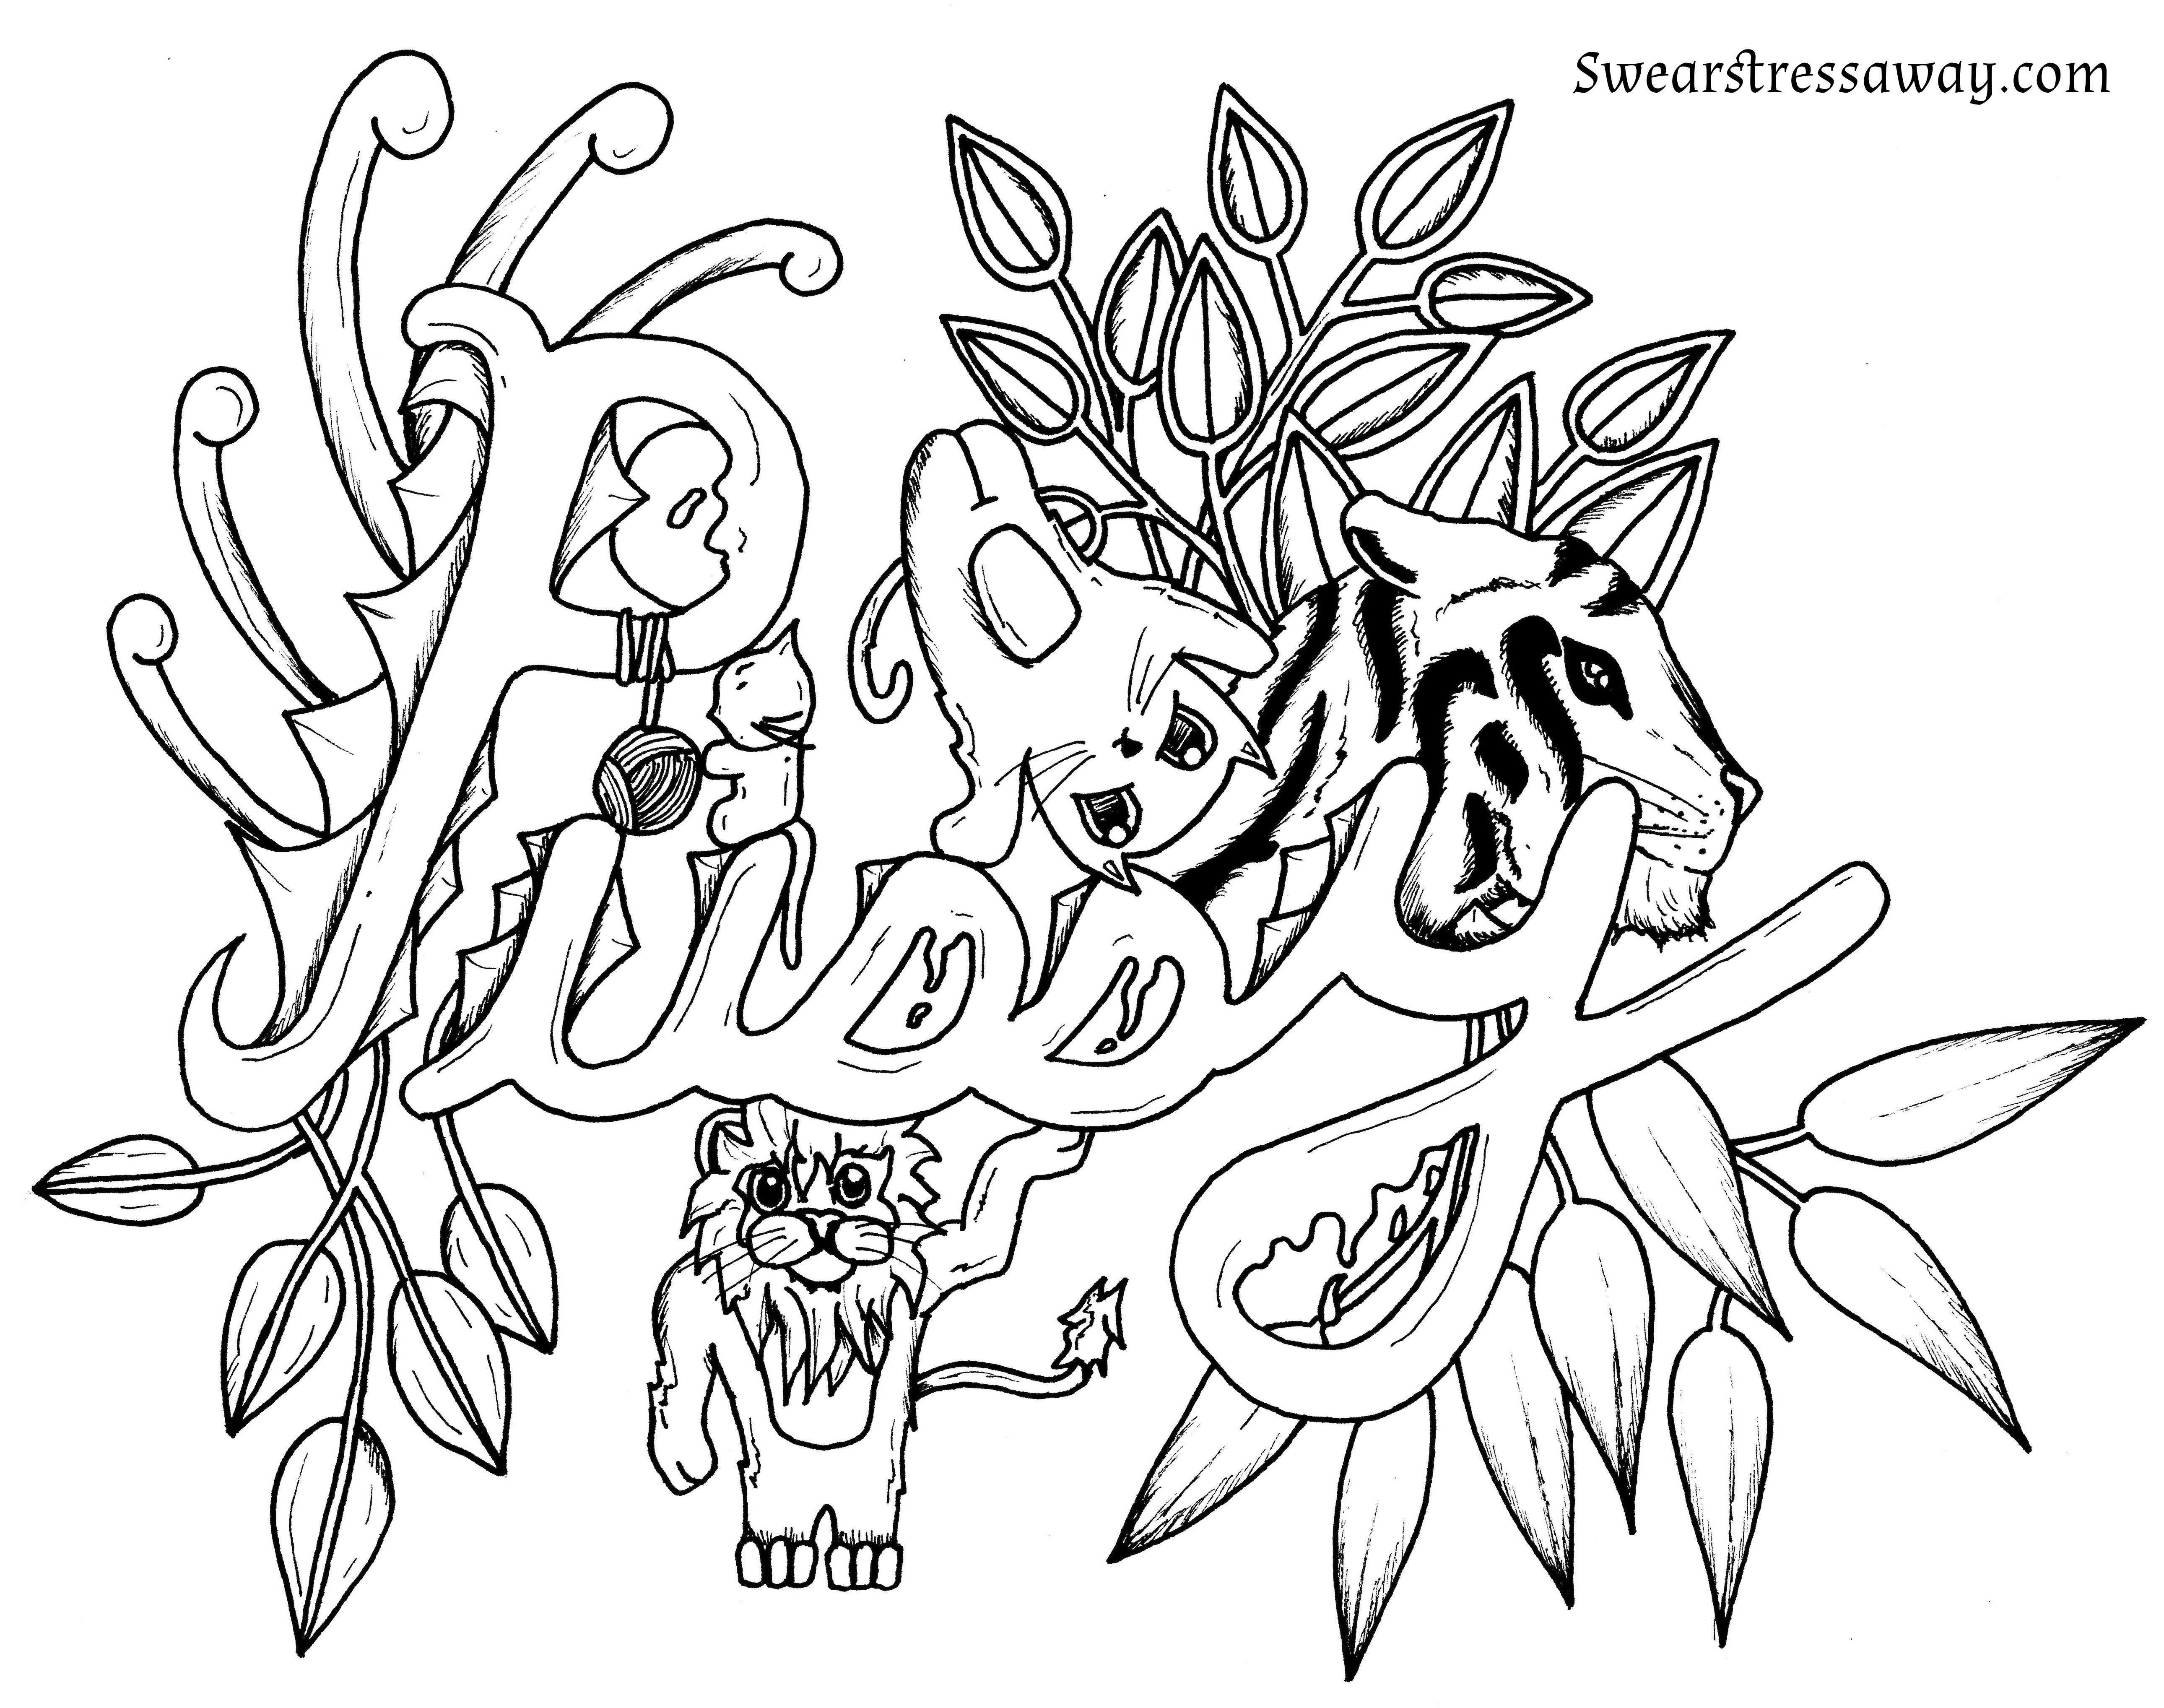 Pussy - Swear Word Coloring Page - Adult Coloring Page -  Swearstressaway.com - Comes